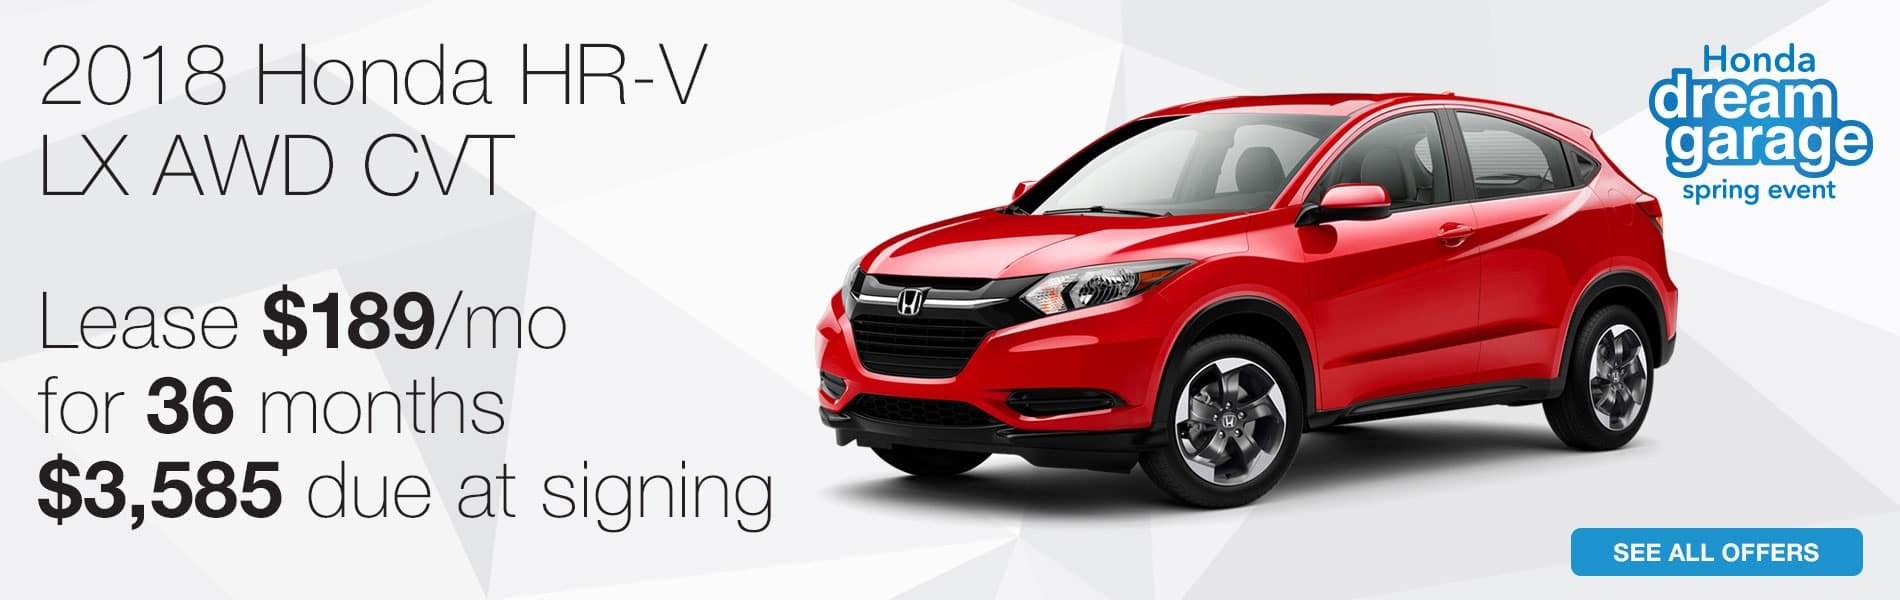 Lease a new 2018 Honda HR-V LX AWD for $189 per month with $3,585 due at signing